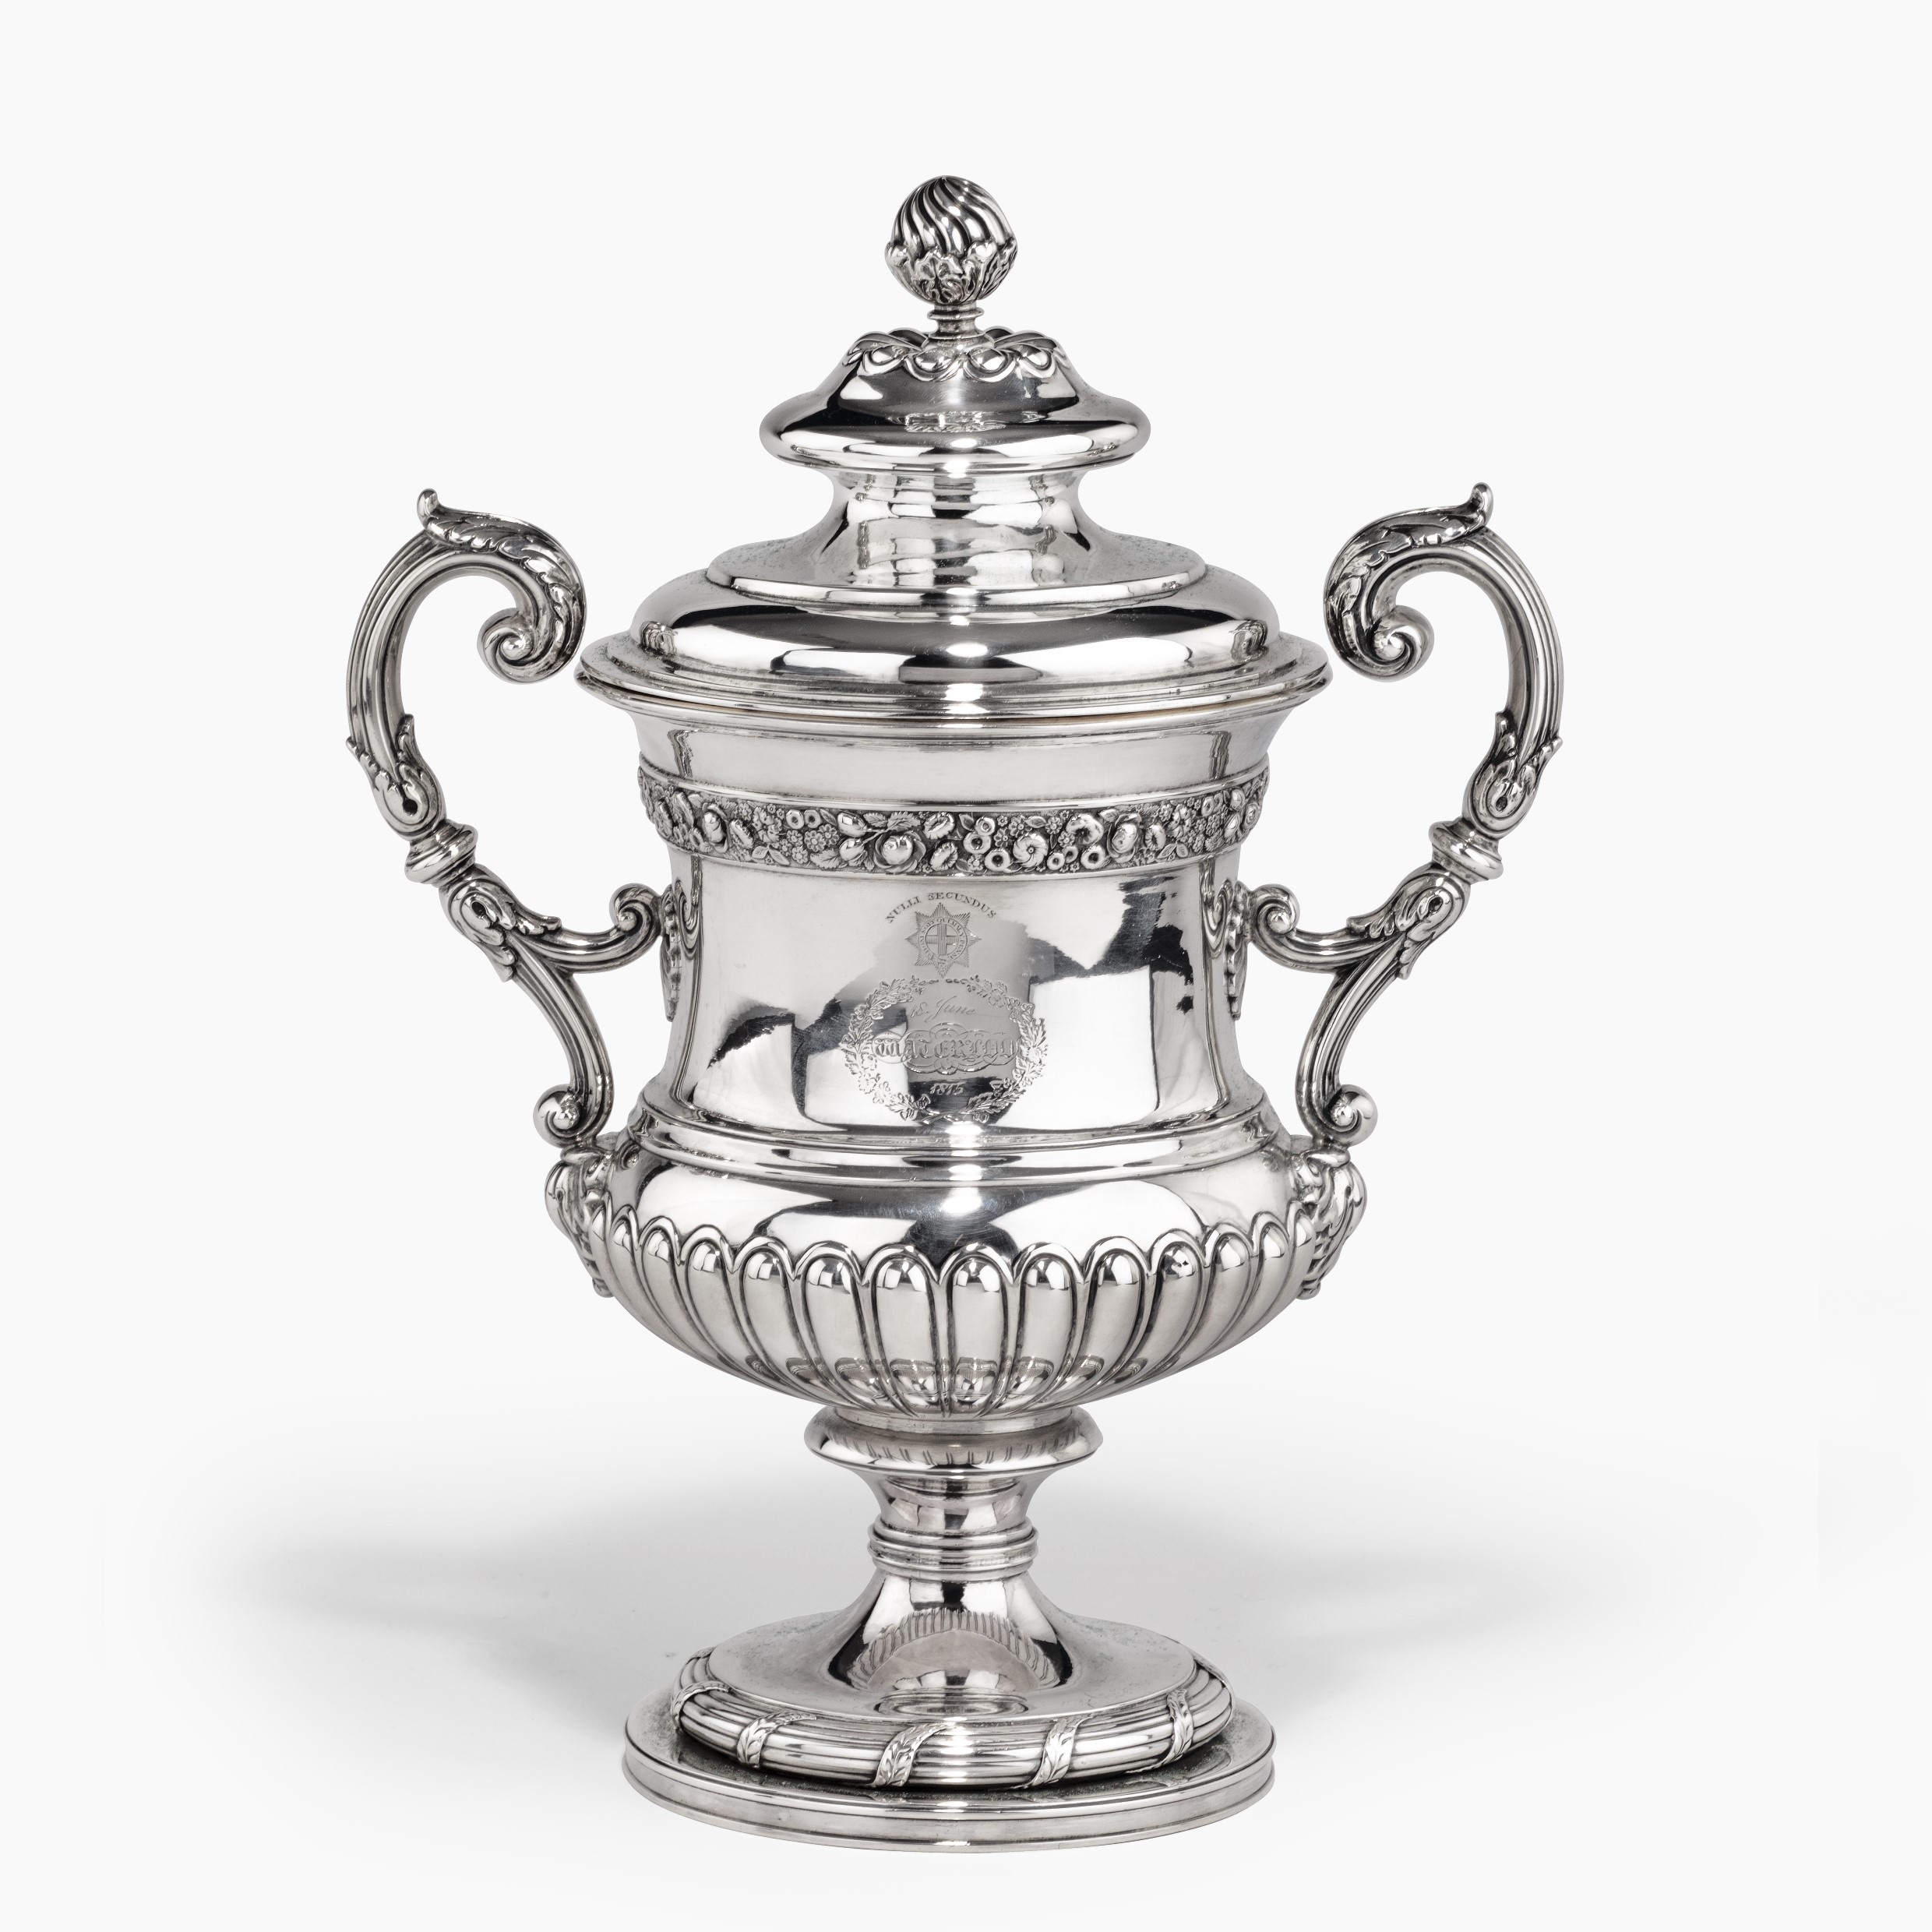 A George III antique silver Battle of Waterloo Commemorative cup and cover belonging to William Hunter, made by Mitchell & Russell, Edinburgh 1818